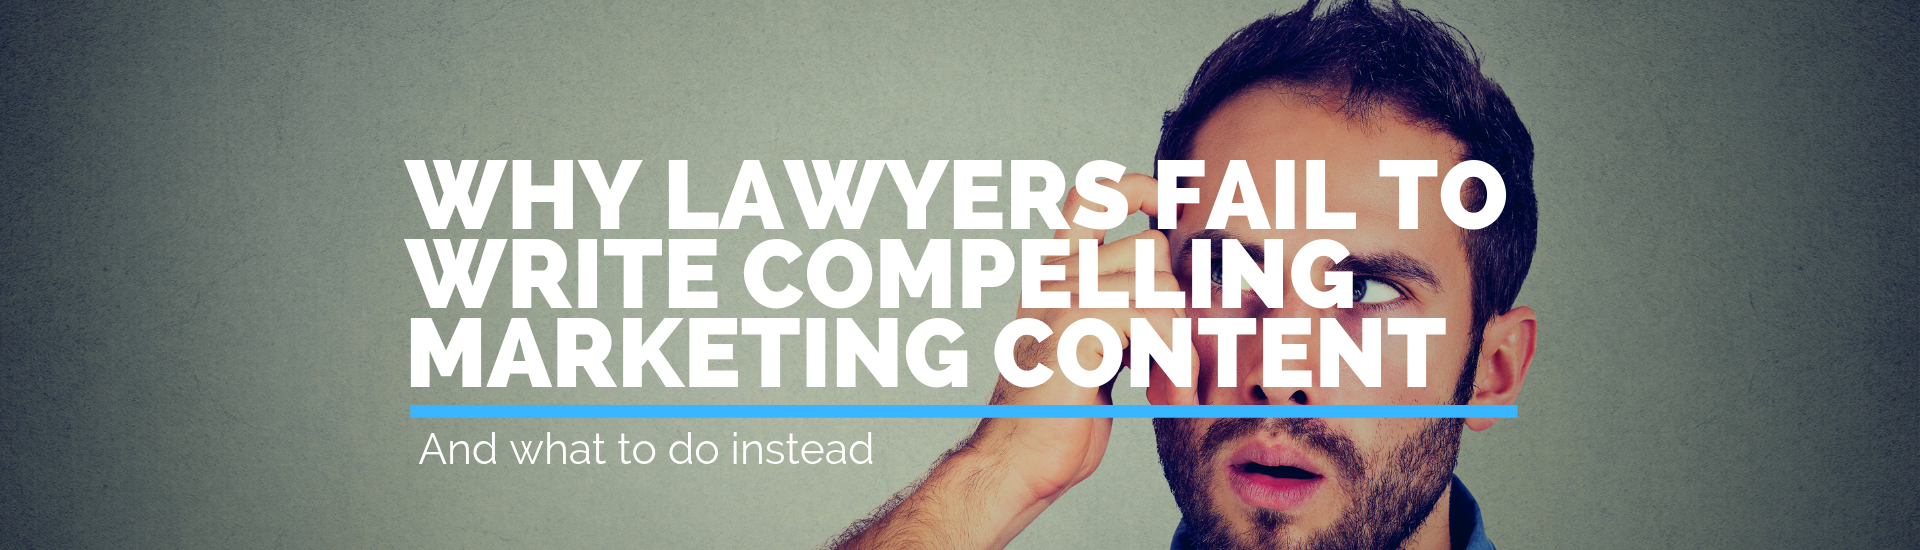 Why Lawyers Fail to Write Compelling Marketing Content | Andrew Abel | Advisio